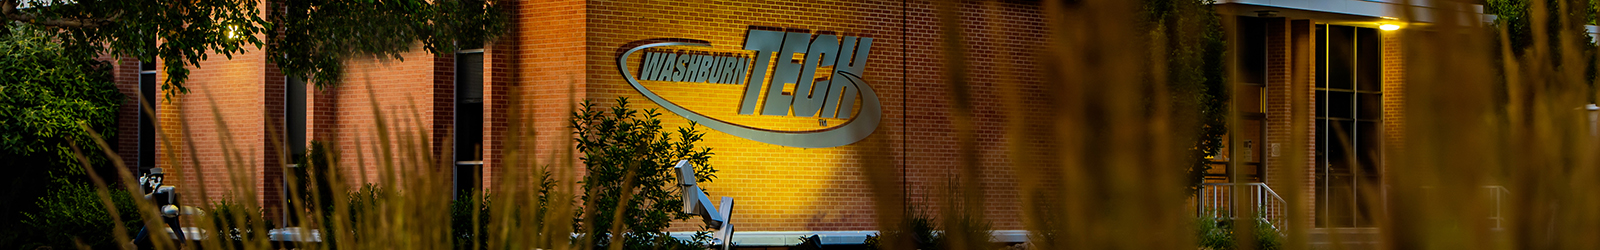 Washburn Tech front of main building